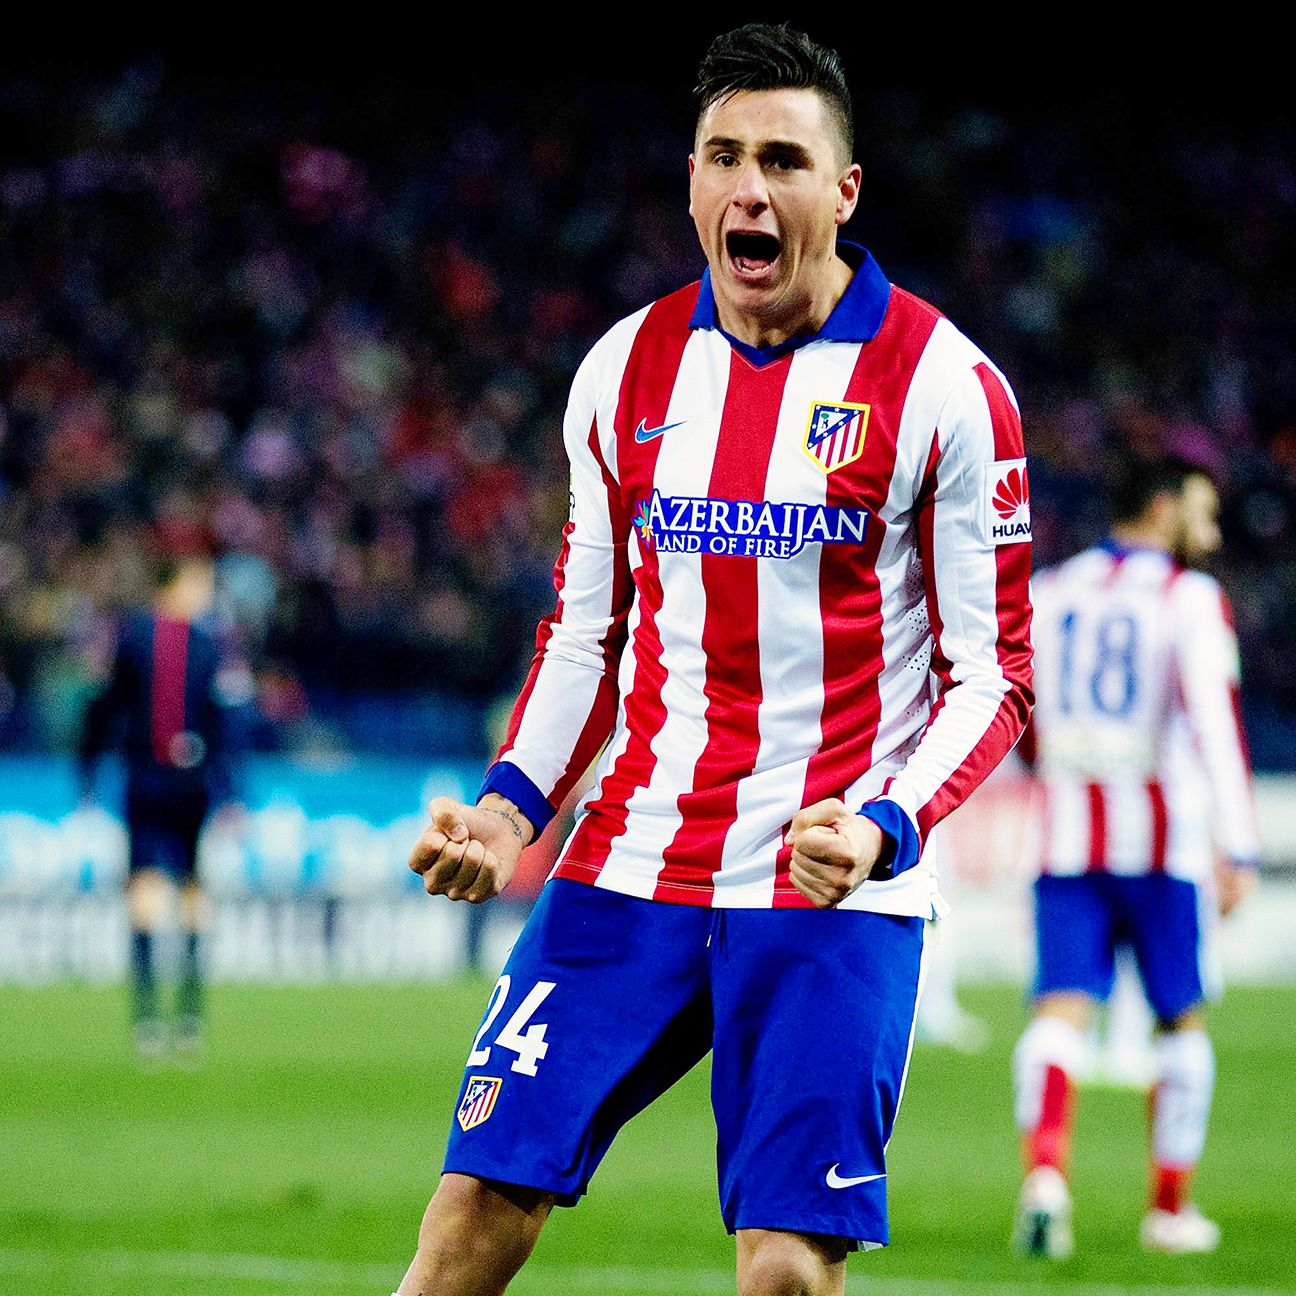 Youngster Jose Maria Gimenez is making a strong case to be paired with Diego Godin at centre-back in Atletico Madrid's Champions League quarterfinal.